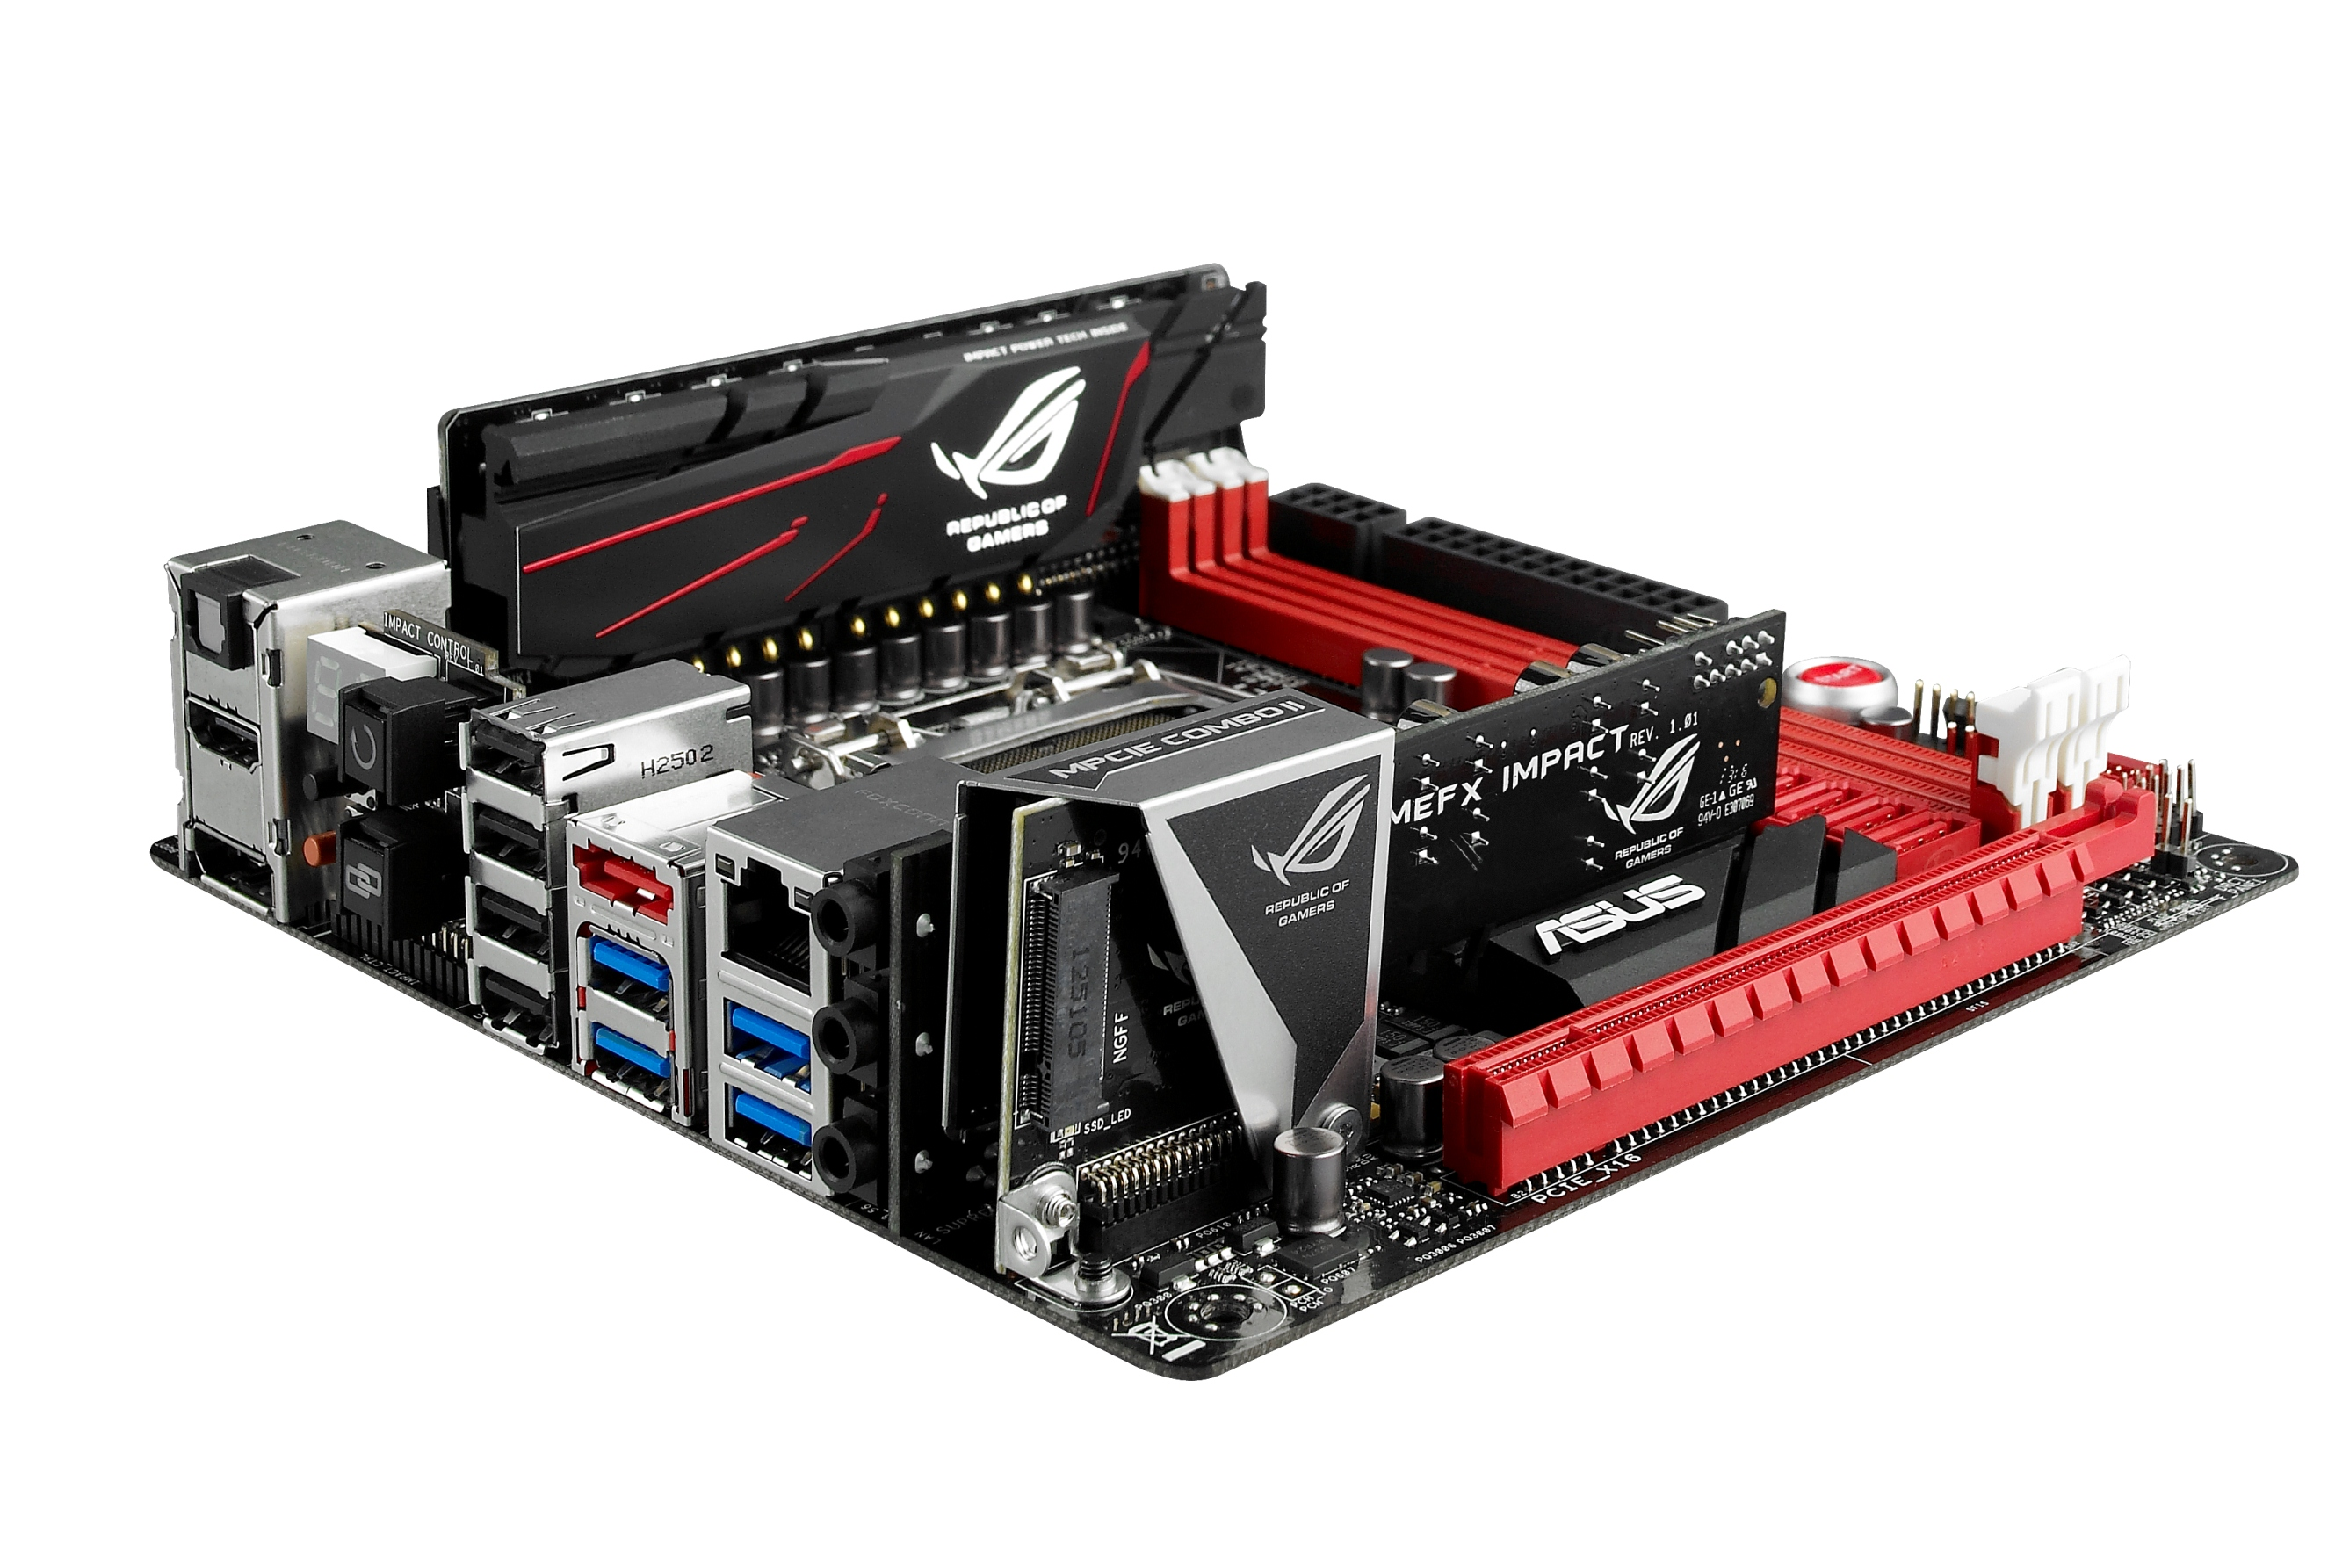 ASUS Republic of Gamers Maximus VI Impact